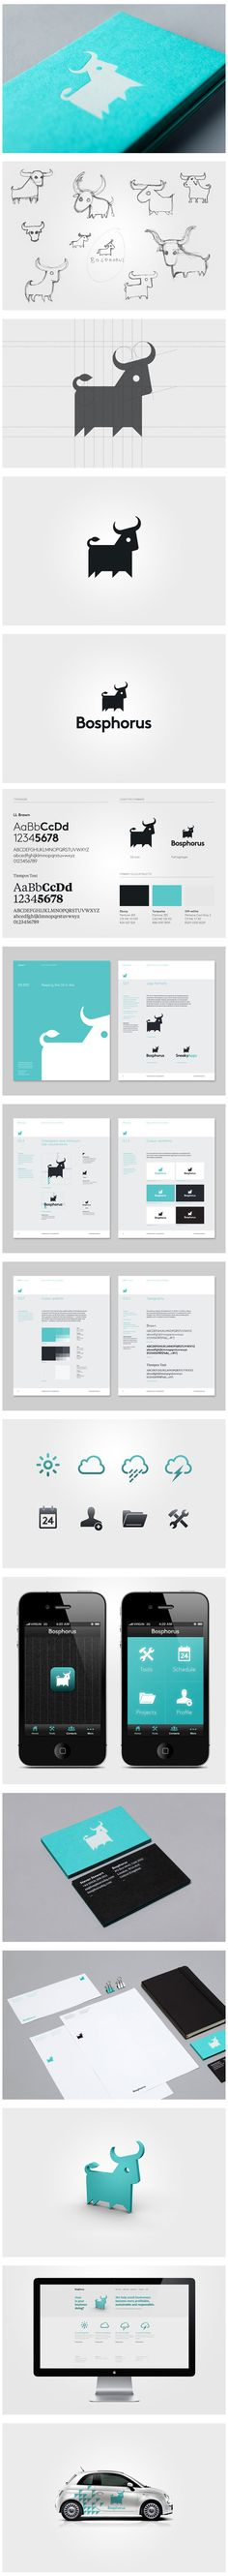 identidad corporativa completa con bocetos Via Behance.